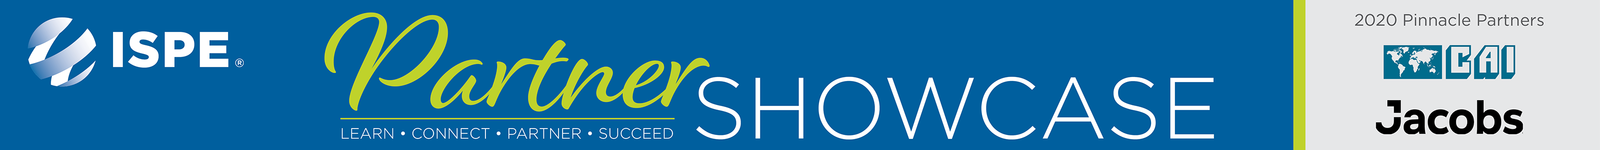 ISPE 2020 Partner Showcase logo